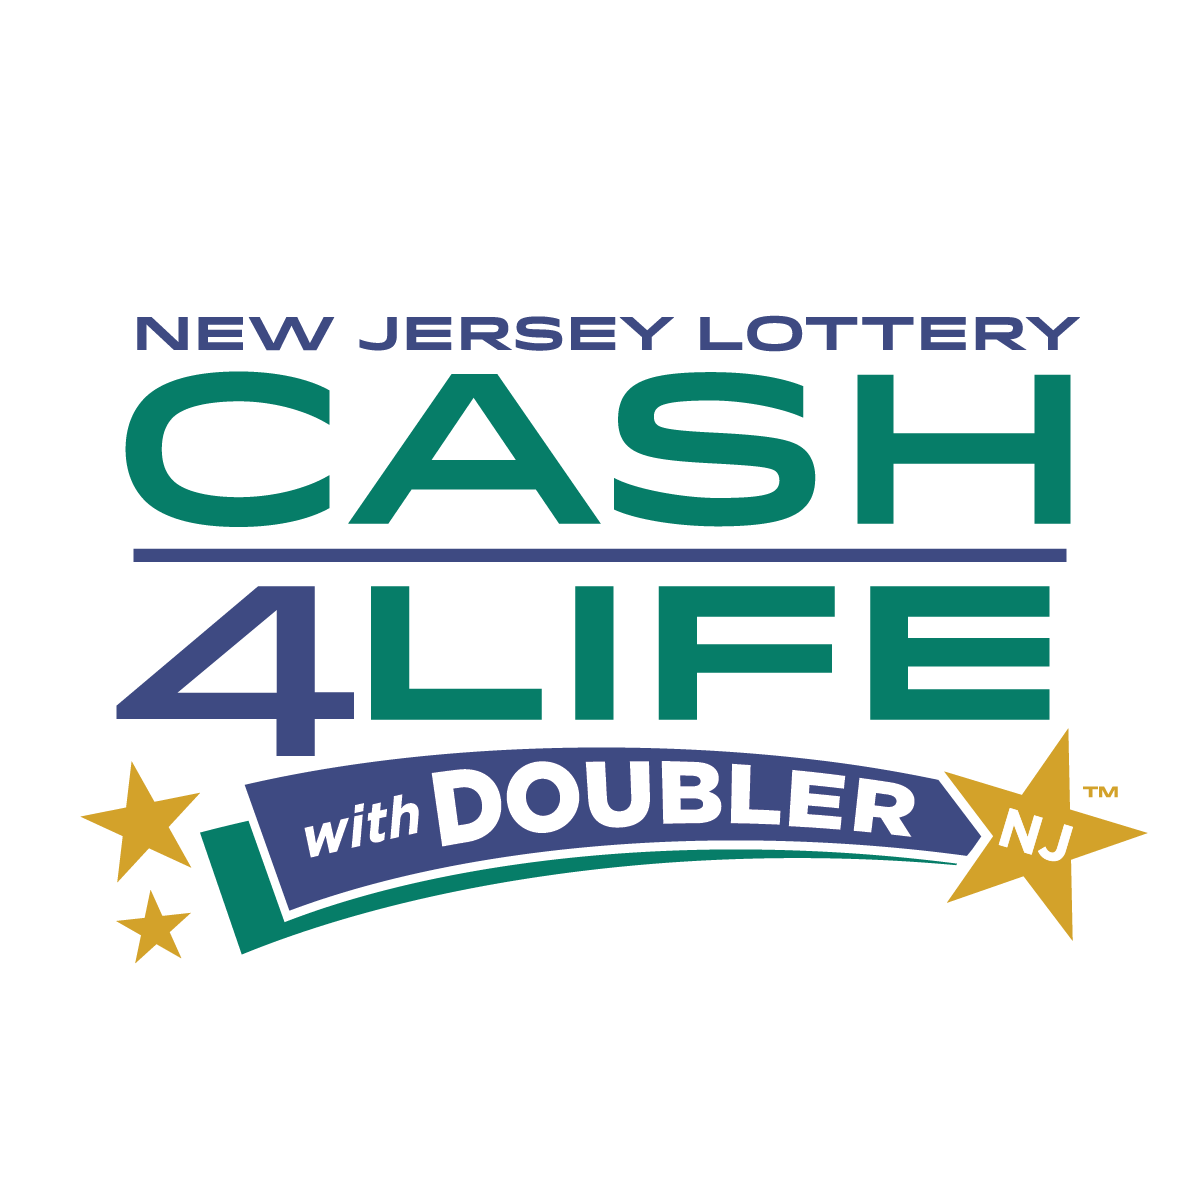 Cash4life drawing. Nj lottery c l